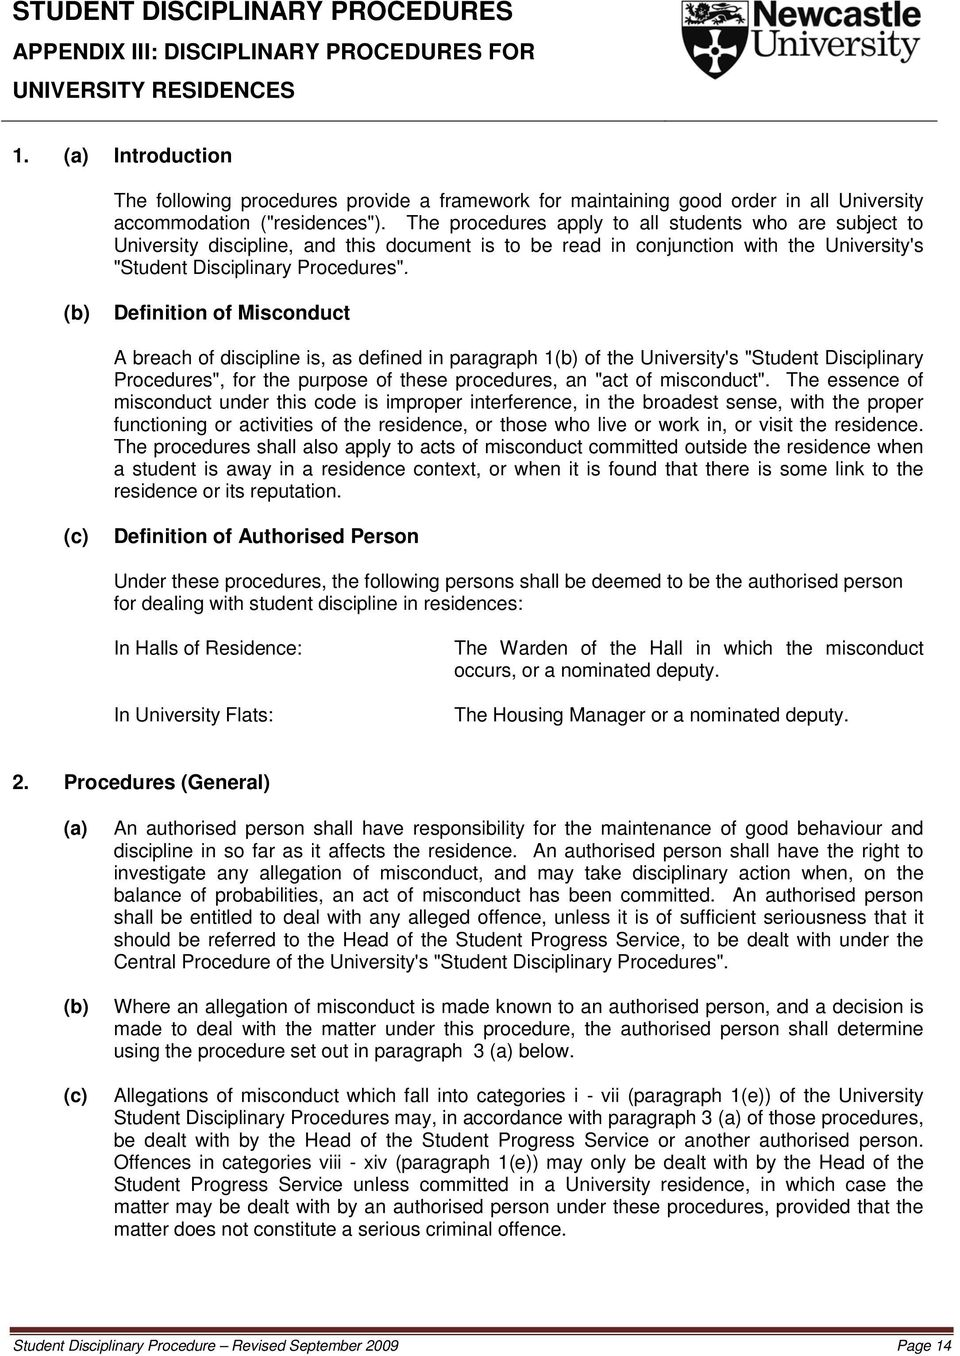 "The procedures apply to all students who are subject to University discipline, and this document is to be read in conjunction with the University's ""Student Disciplinary Procedures""."